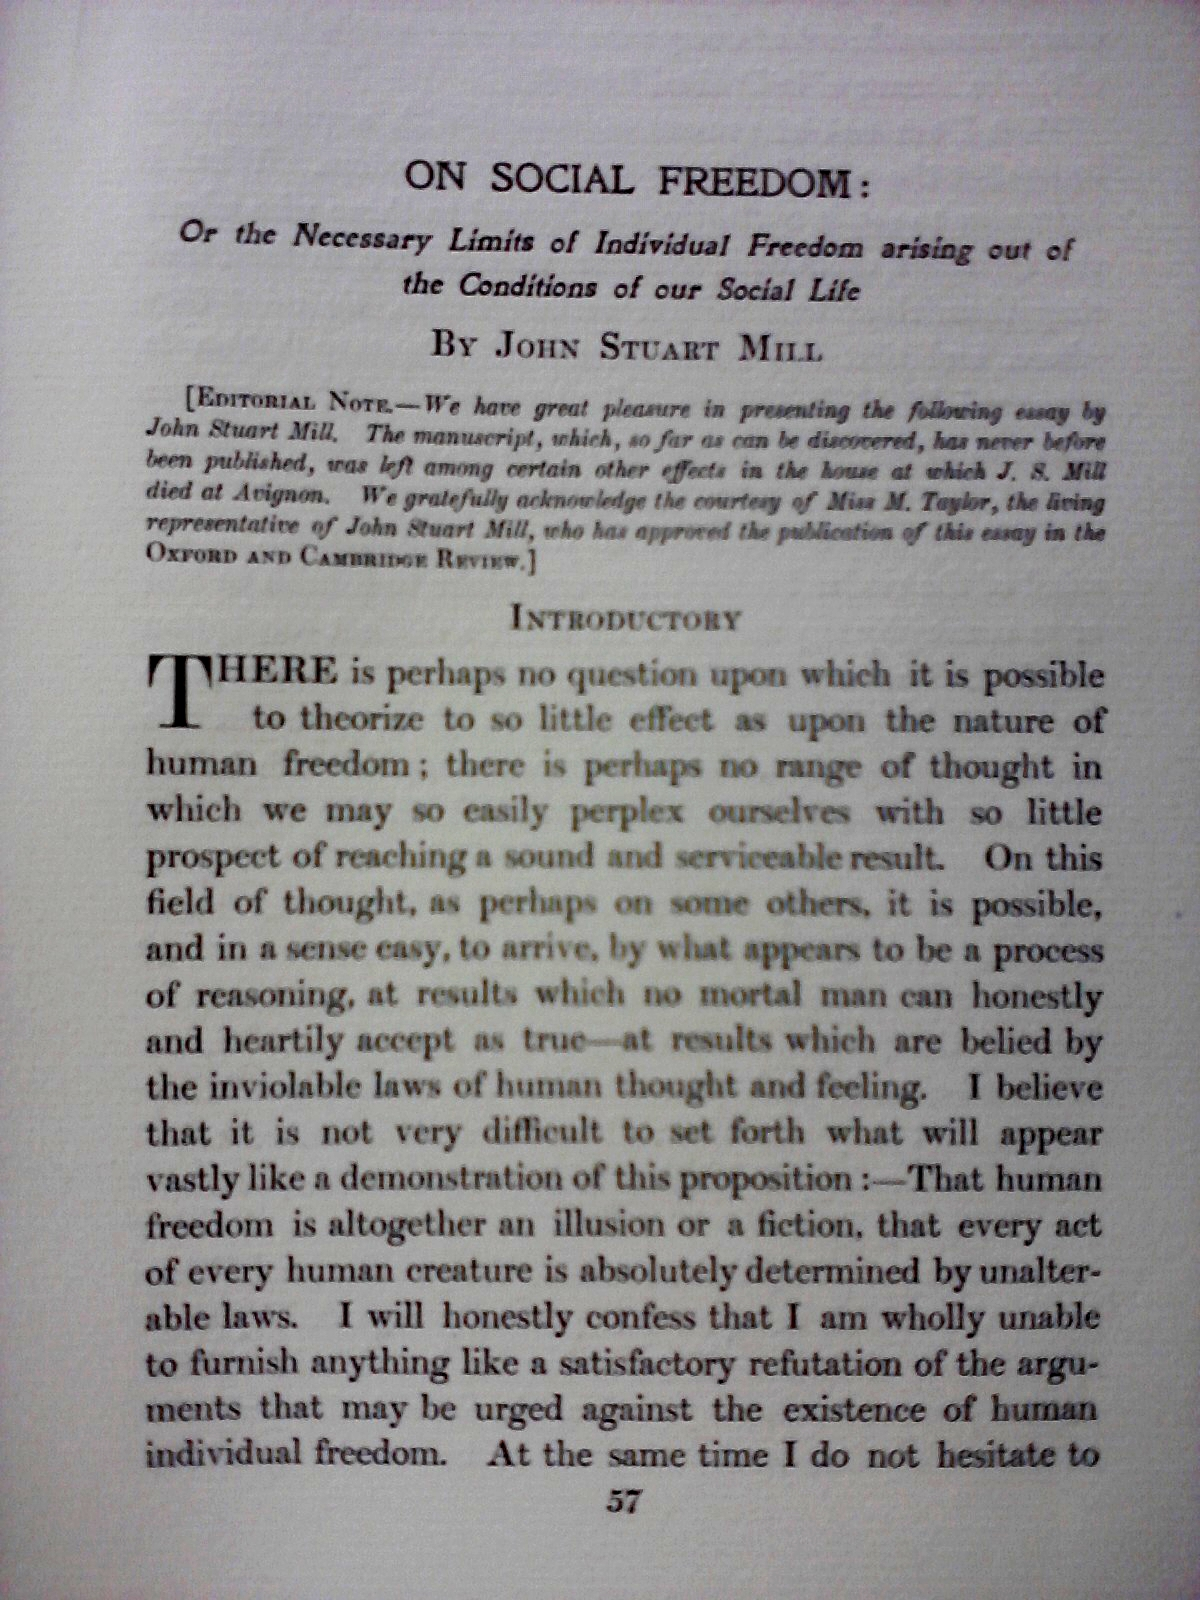 006 Essay Example Freedom Definition On Social In Oxford And Cambridge Review 1907 Rare Meaning Of Speech Full